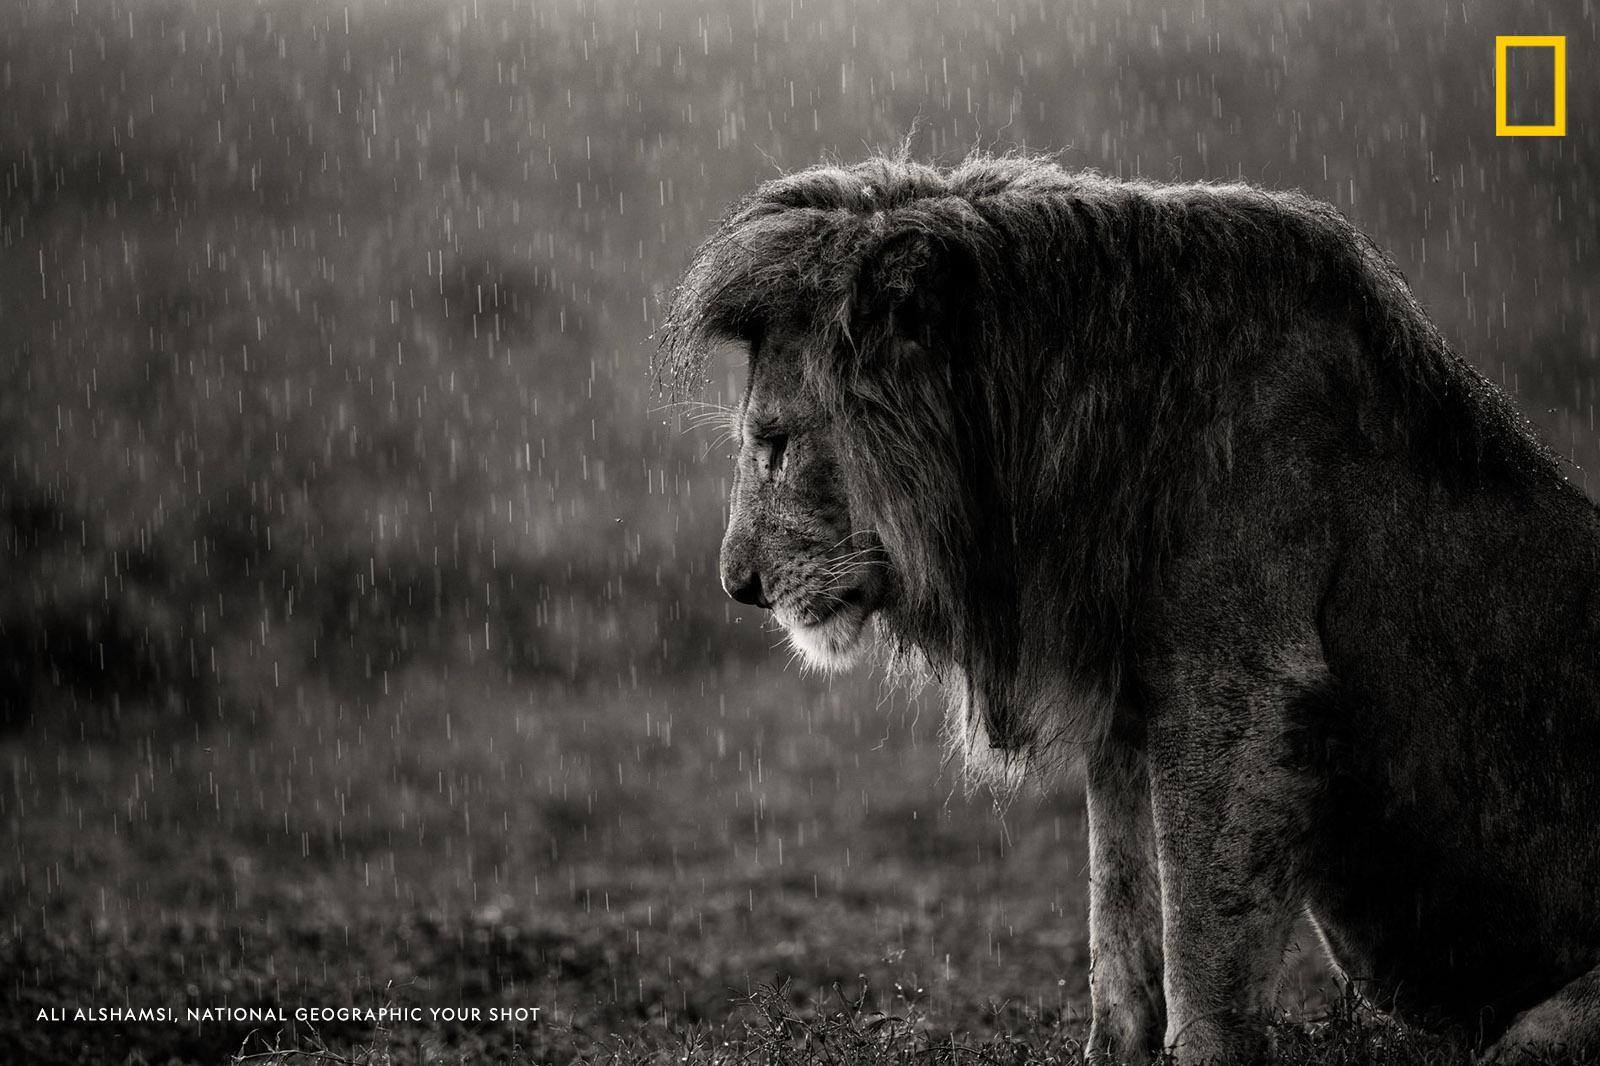 """Your Shot photographer Ali Alshamsi captured this dramatic image of a lion resting in the rain in Tanzania. """"I usually never see lions in a pose like this,"""" writes senior producer Matt Adams. https://on.natgeo.com/2UKvuie"""